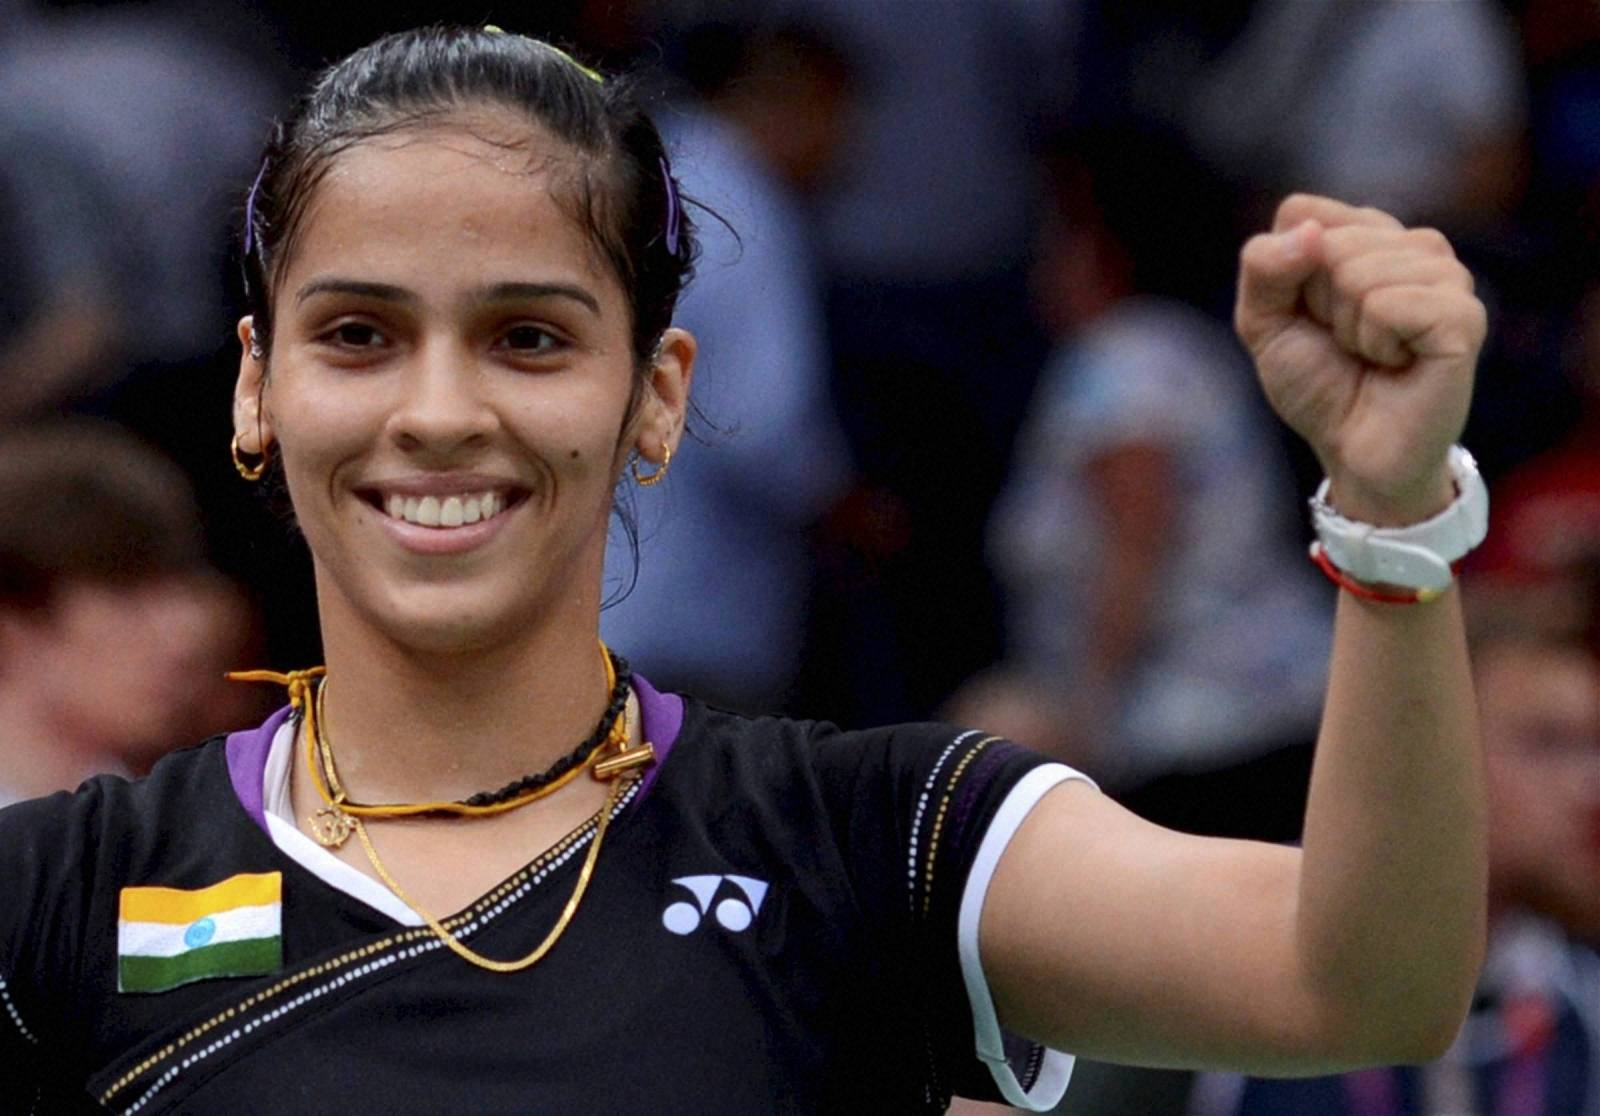 Badminton Player Saina Nehwal Player Saina Nehwal on